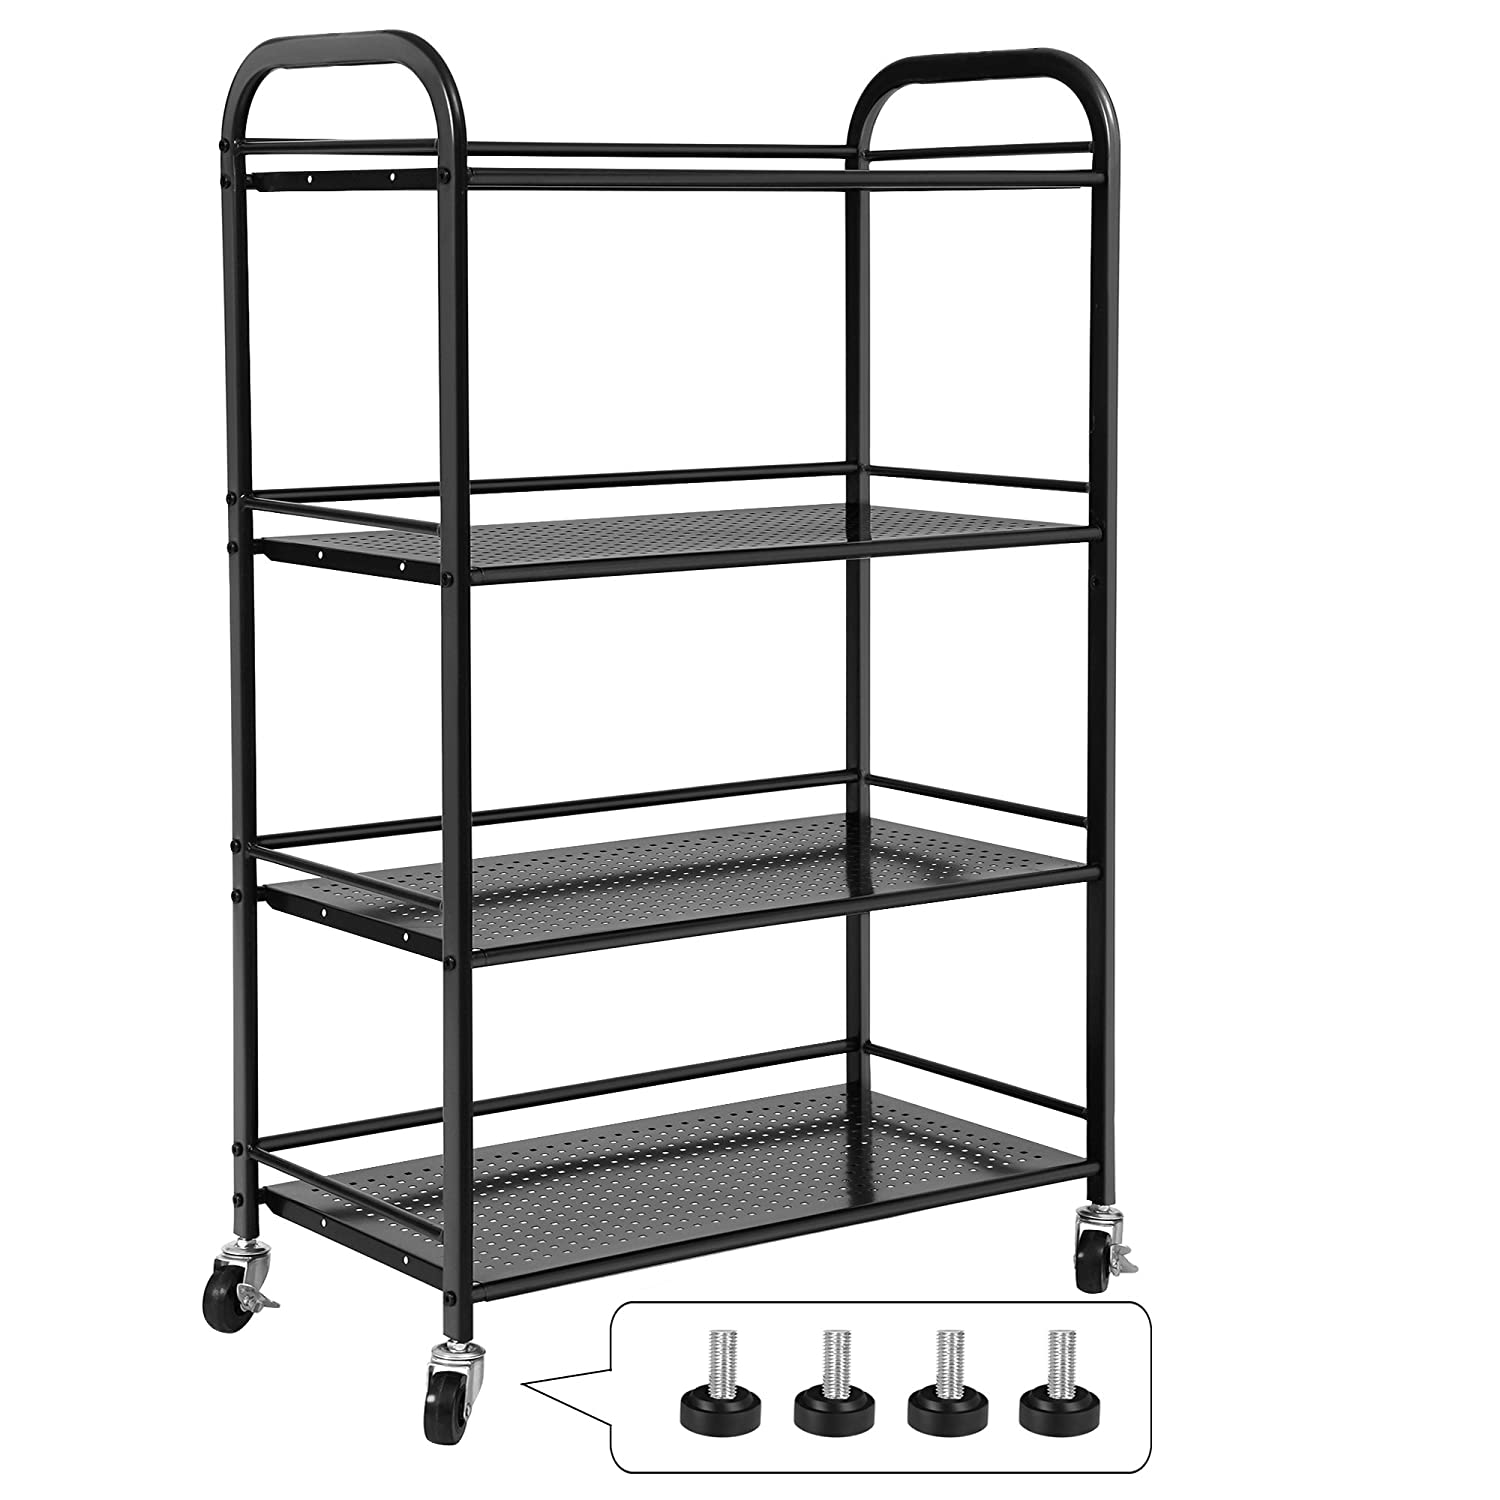 SONGMICS 4 Tiers Storage Cart Utility Trolley for Kitchen Pantry Bathroom on Casters or Adjustable Feet Black UBSC14B